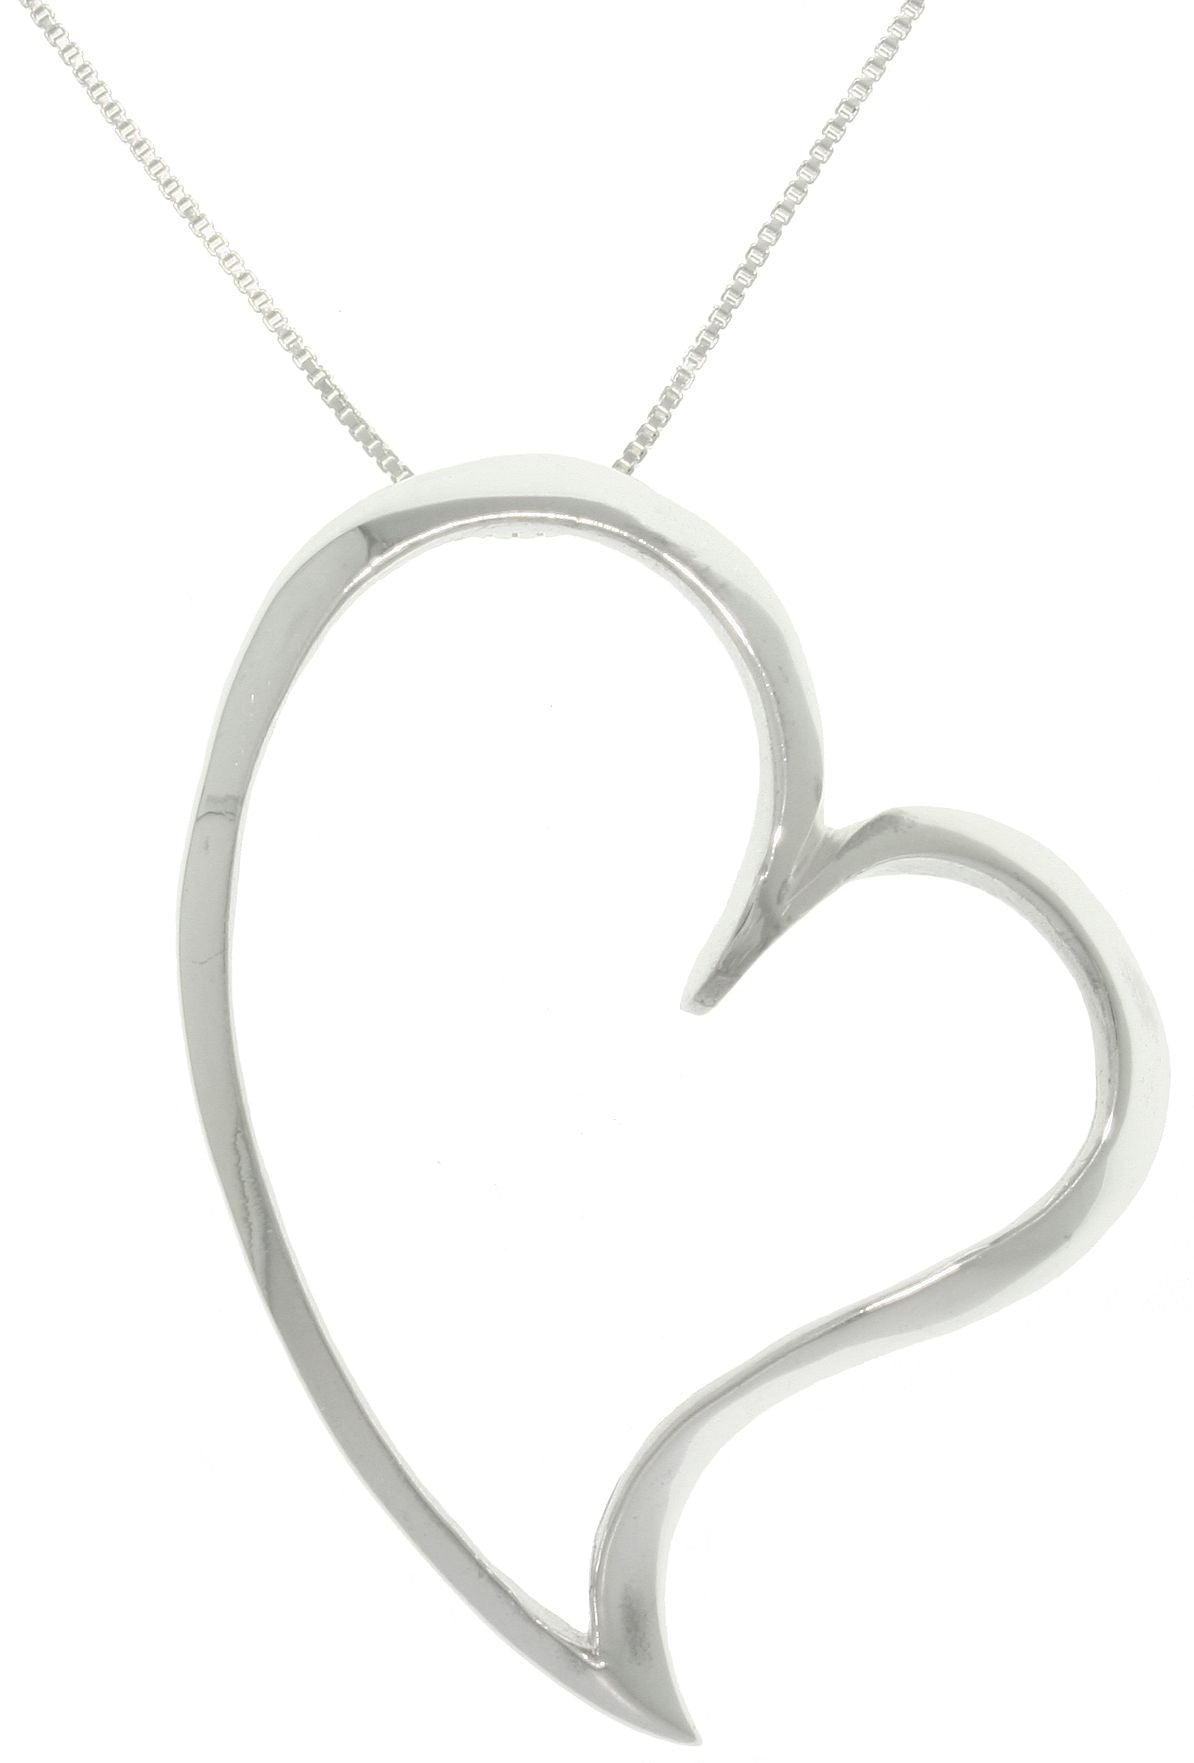 "Jewelry Trends Sterling Silver Large Open Floating Heart Pendant on 18"" Box Chain Necklace"